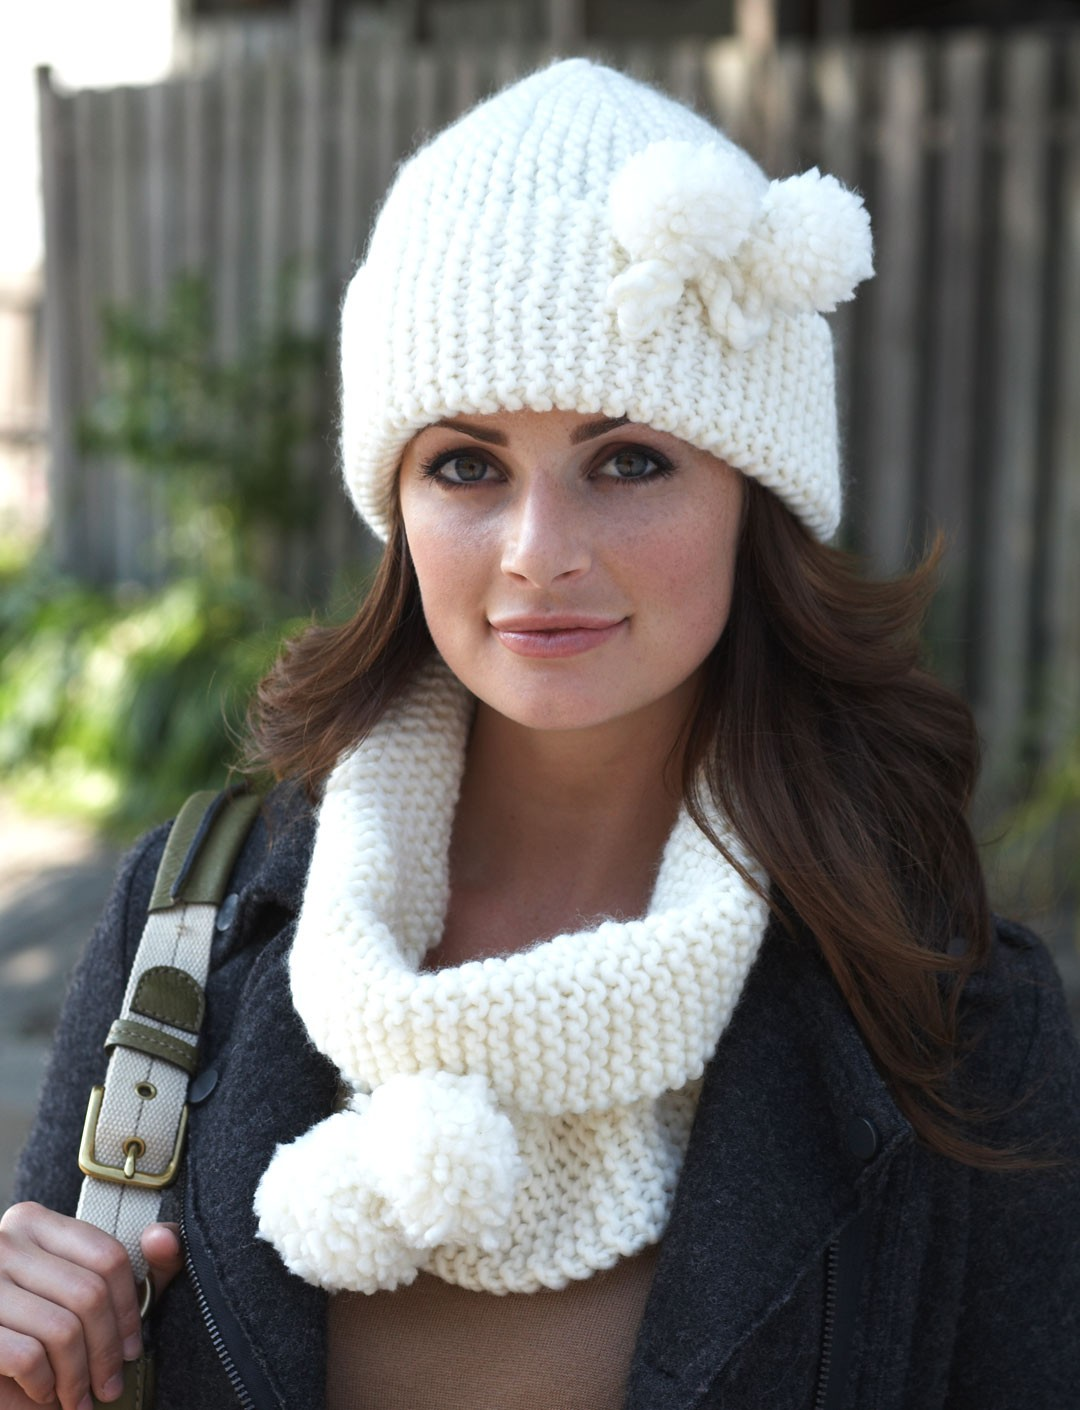 Free Knitting Patterns Cowl Hat : Yarnspirations.com - Bernat Acorn Hat - Patterns Yarnspirations Hats Hats...